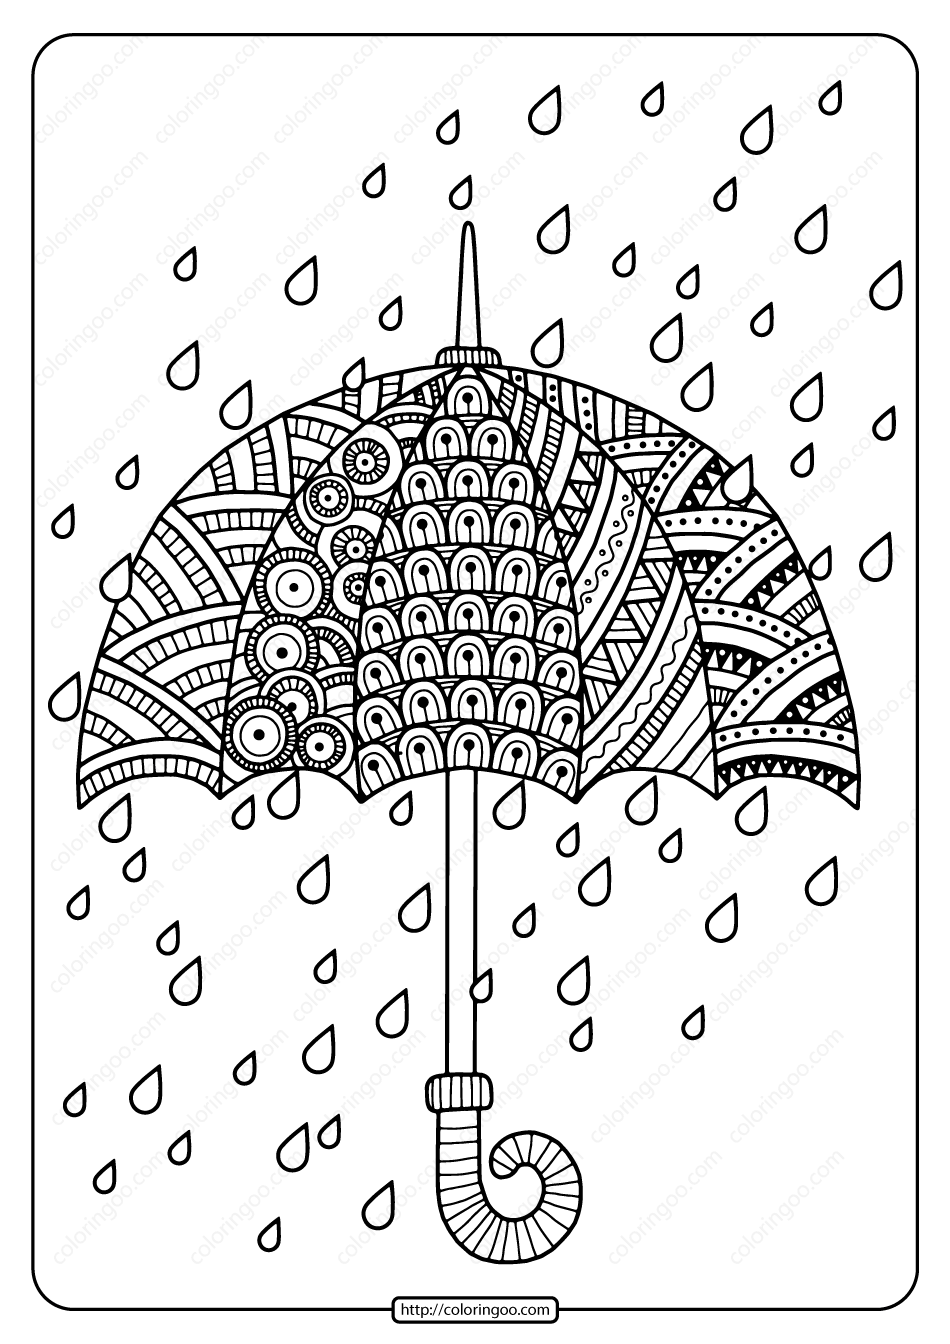 Printable Rain Drops With Umbrella Coloring Page High Quality Free Printable Coloring Drawing In 2020 Umbrella Coloring Page Spring Coloring Pages Coloring Pages